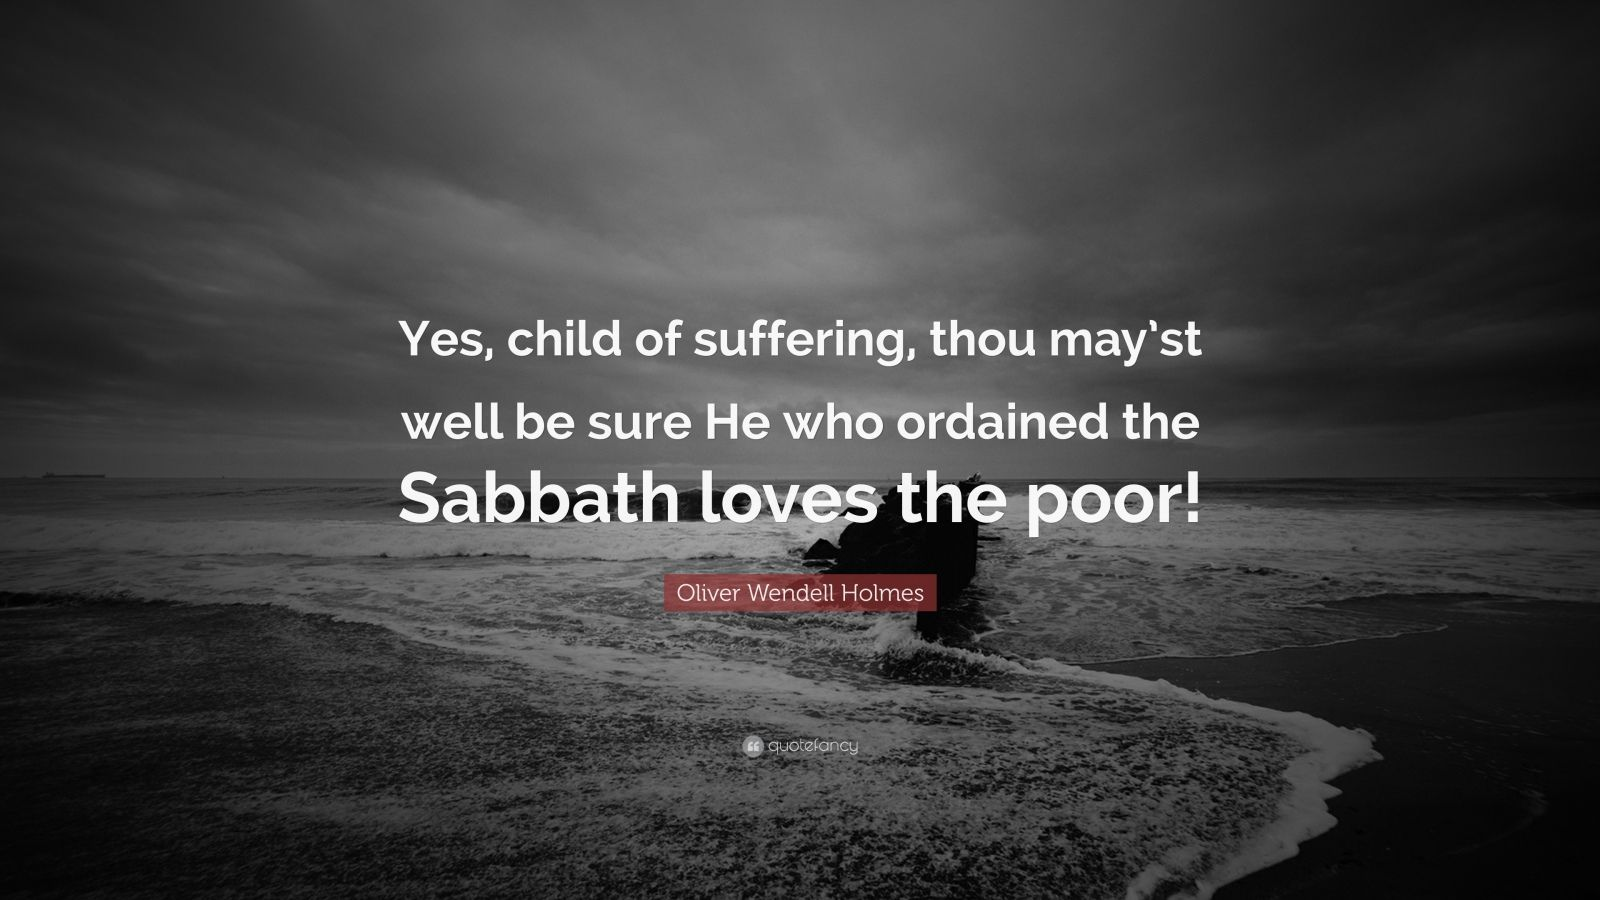 """Oliver Wendell Holmes Quote: """"Yes, child of suffering, thou may'st well be sure He who ordained the Sabbath loves the poor!"""""""